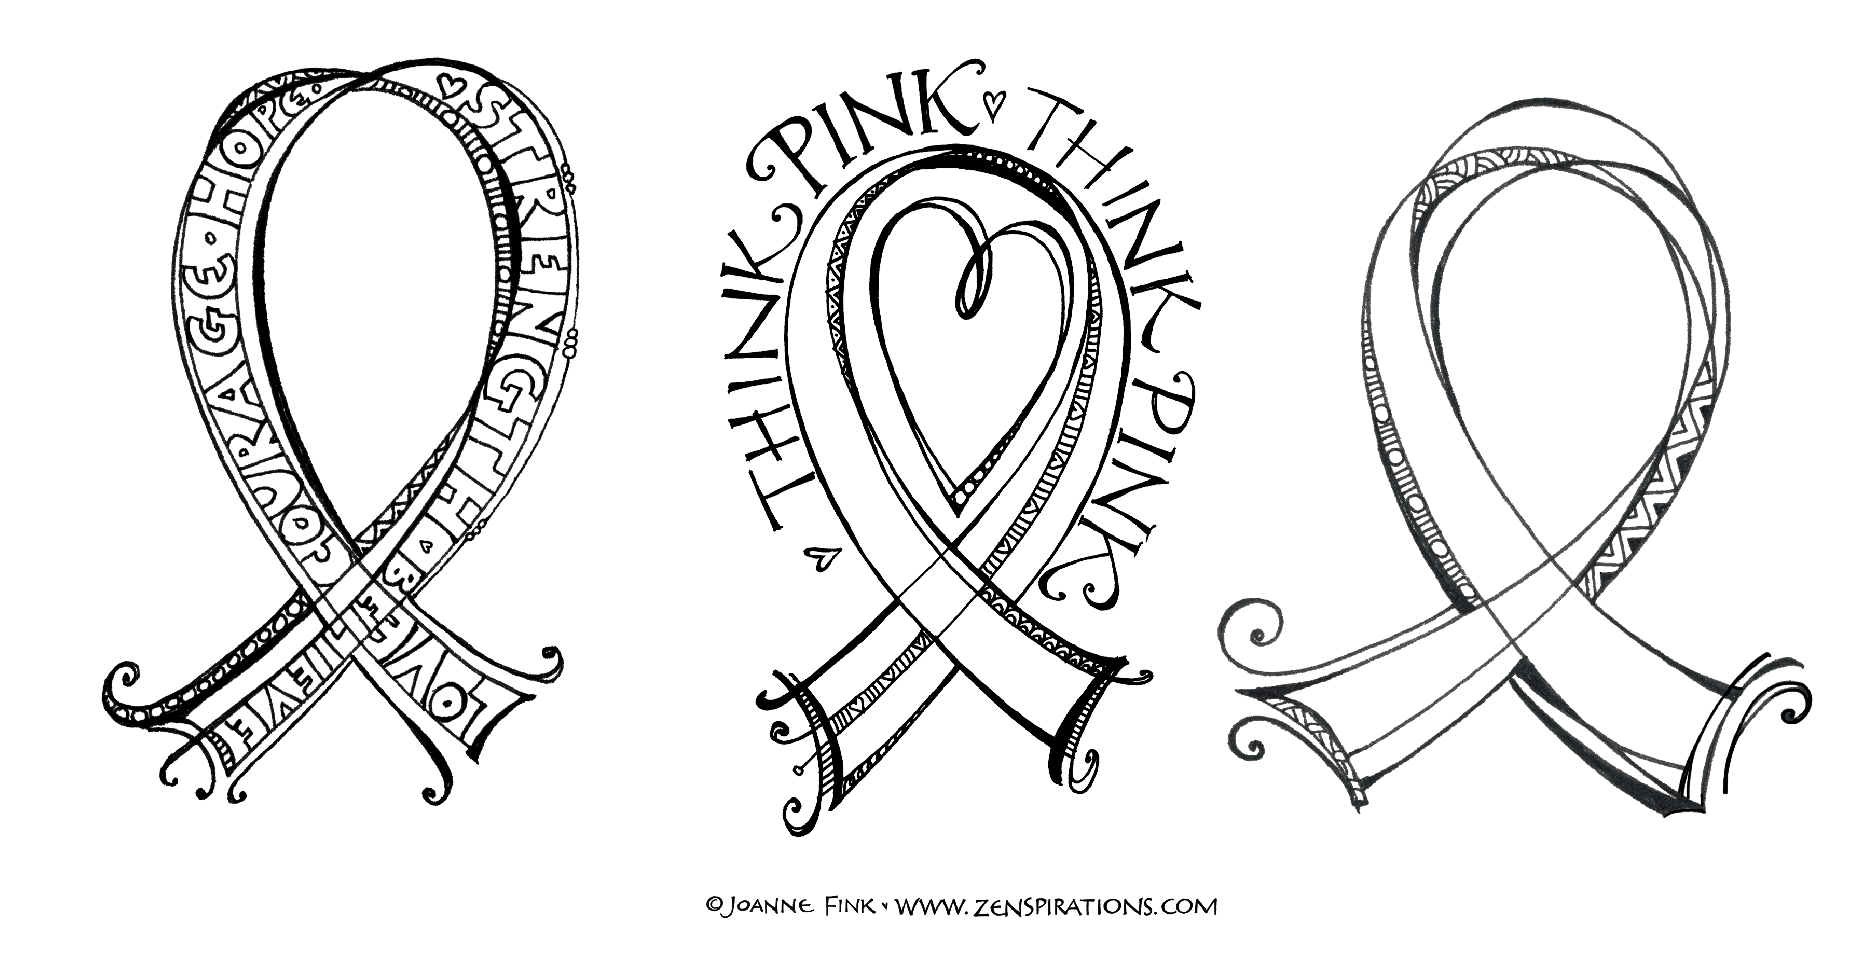 - Think Pink! Free Downloadable Coloring Pages! - Zenspirations